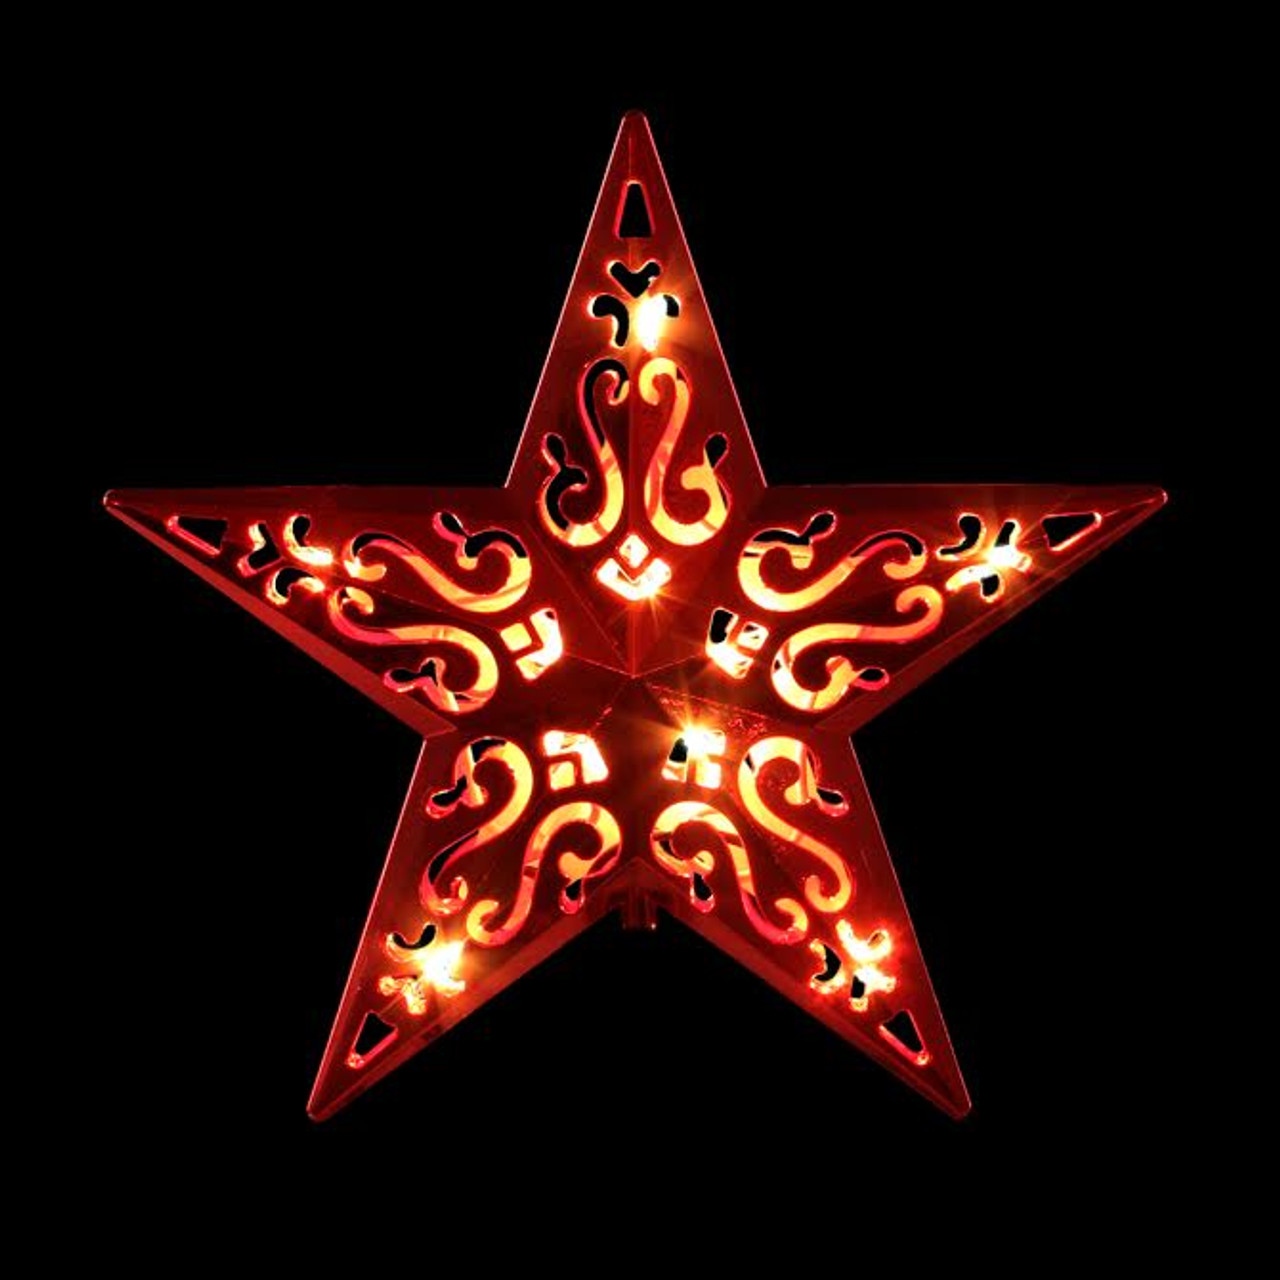 8 Lighted Red Cut-Out Design Decorative Star Christmas ...